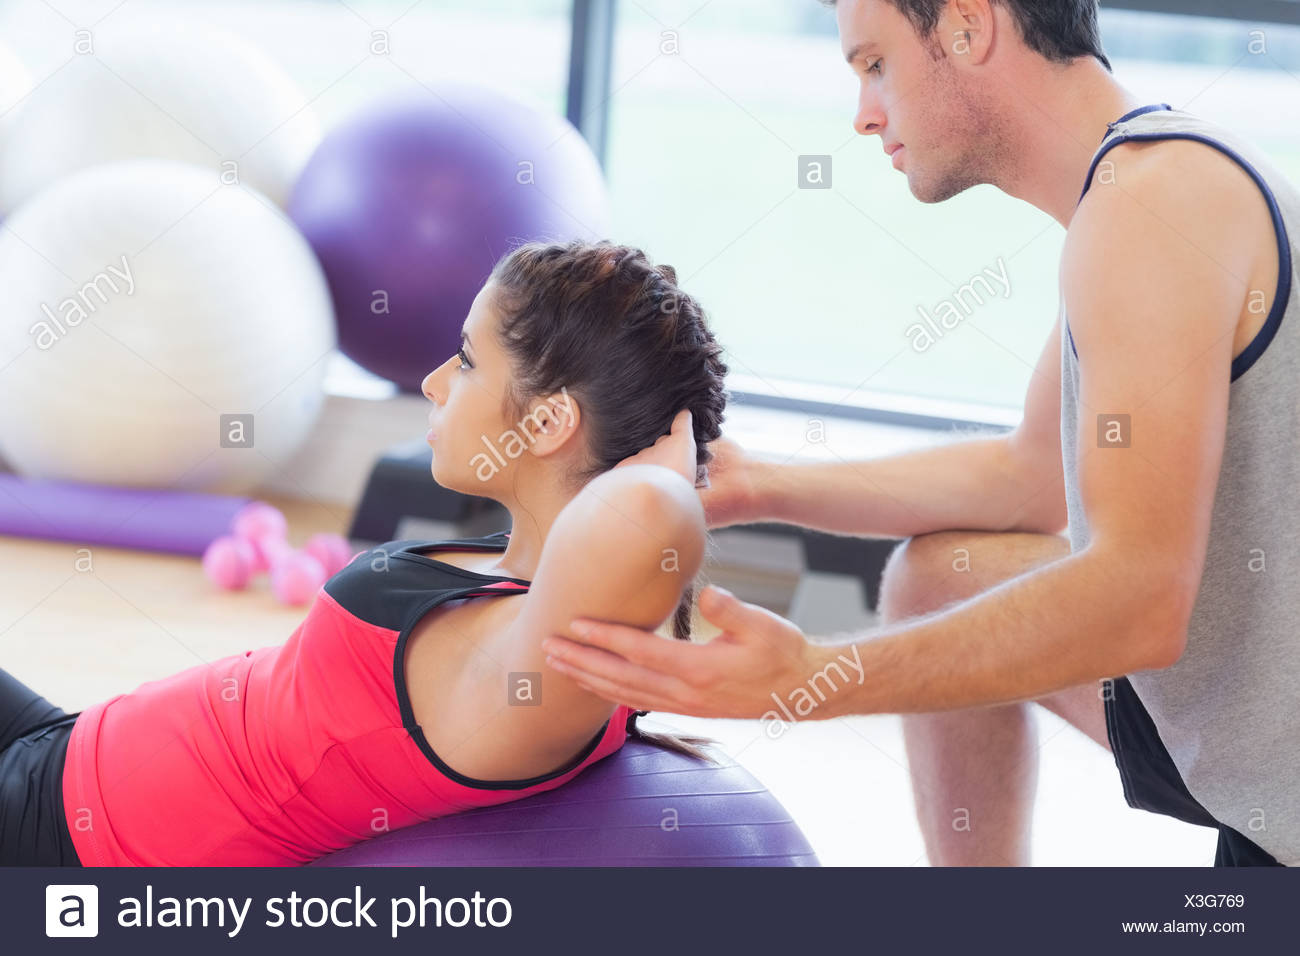 Male trainer helping woman do crunches  on fitness ball at gym - Stock Image